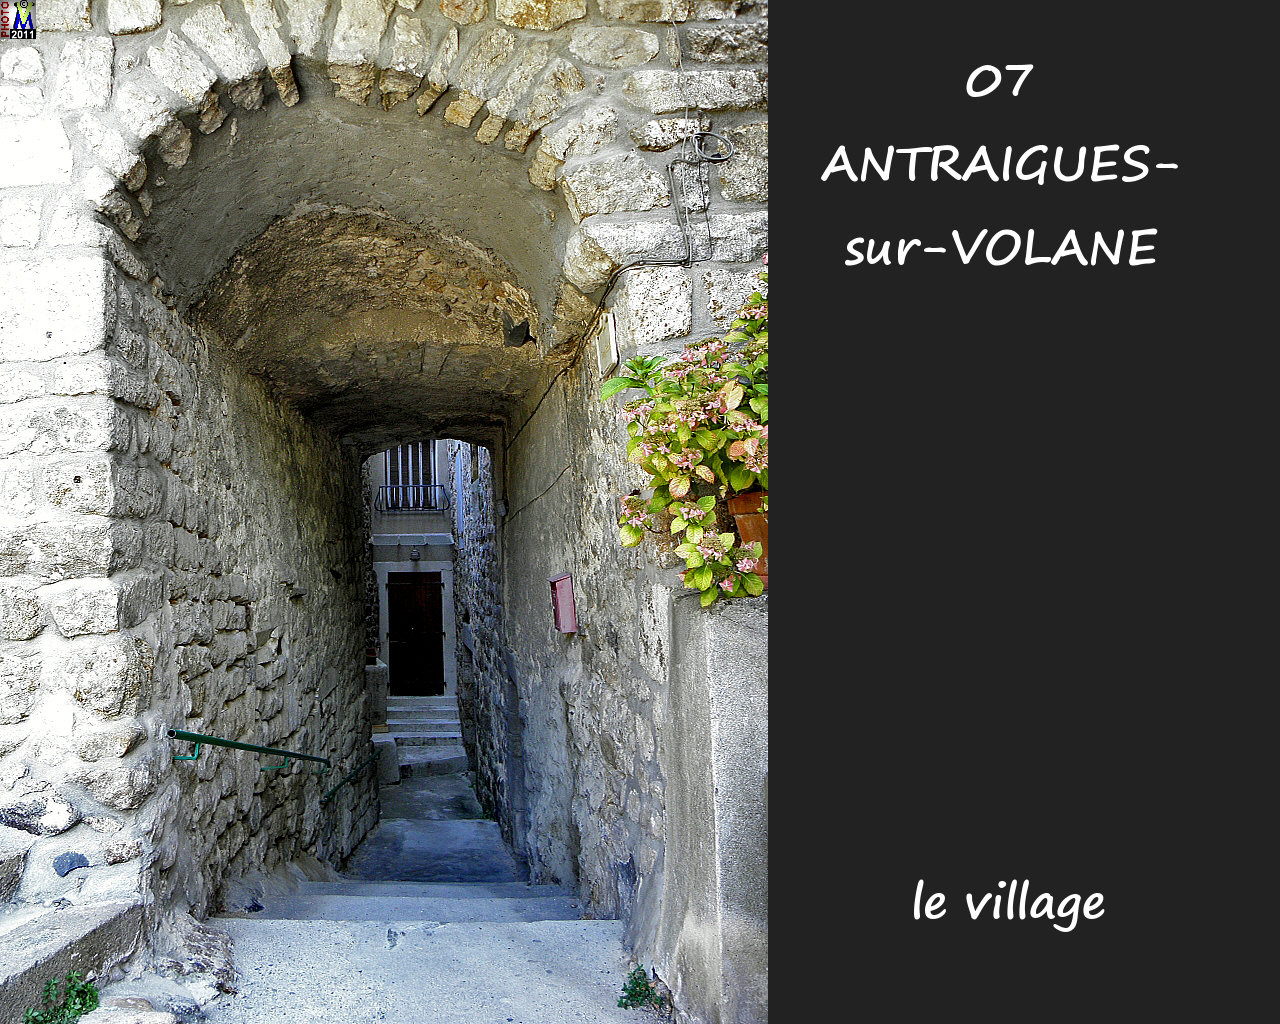 07ANTRAIGUES-VOLANE_village_118.jpg